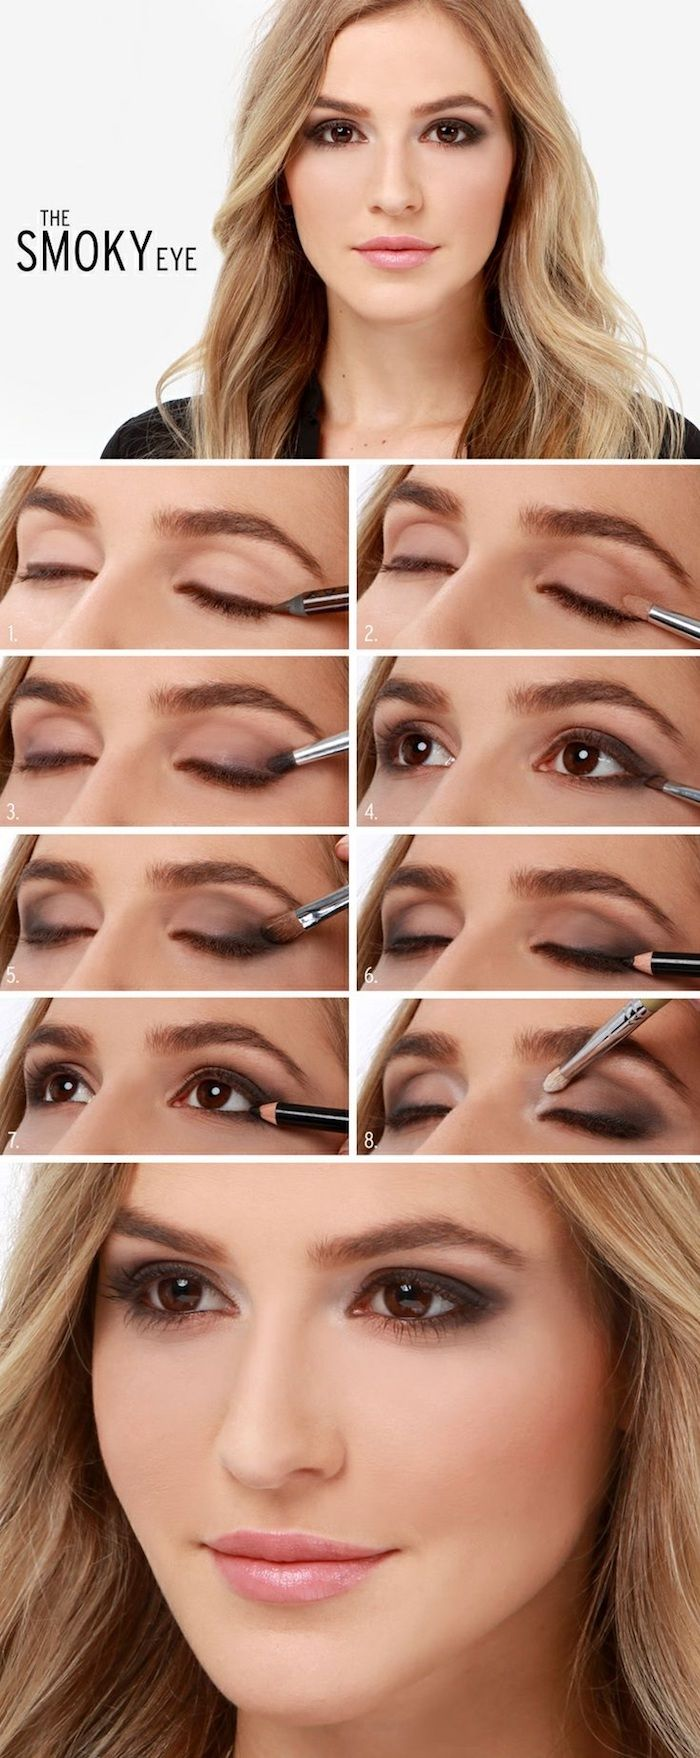 Photo of ▷ 1001 + ideas for perfect make-up: face painting for beginners